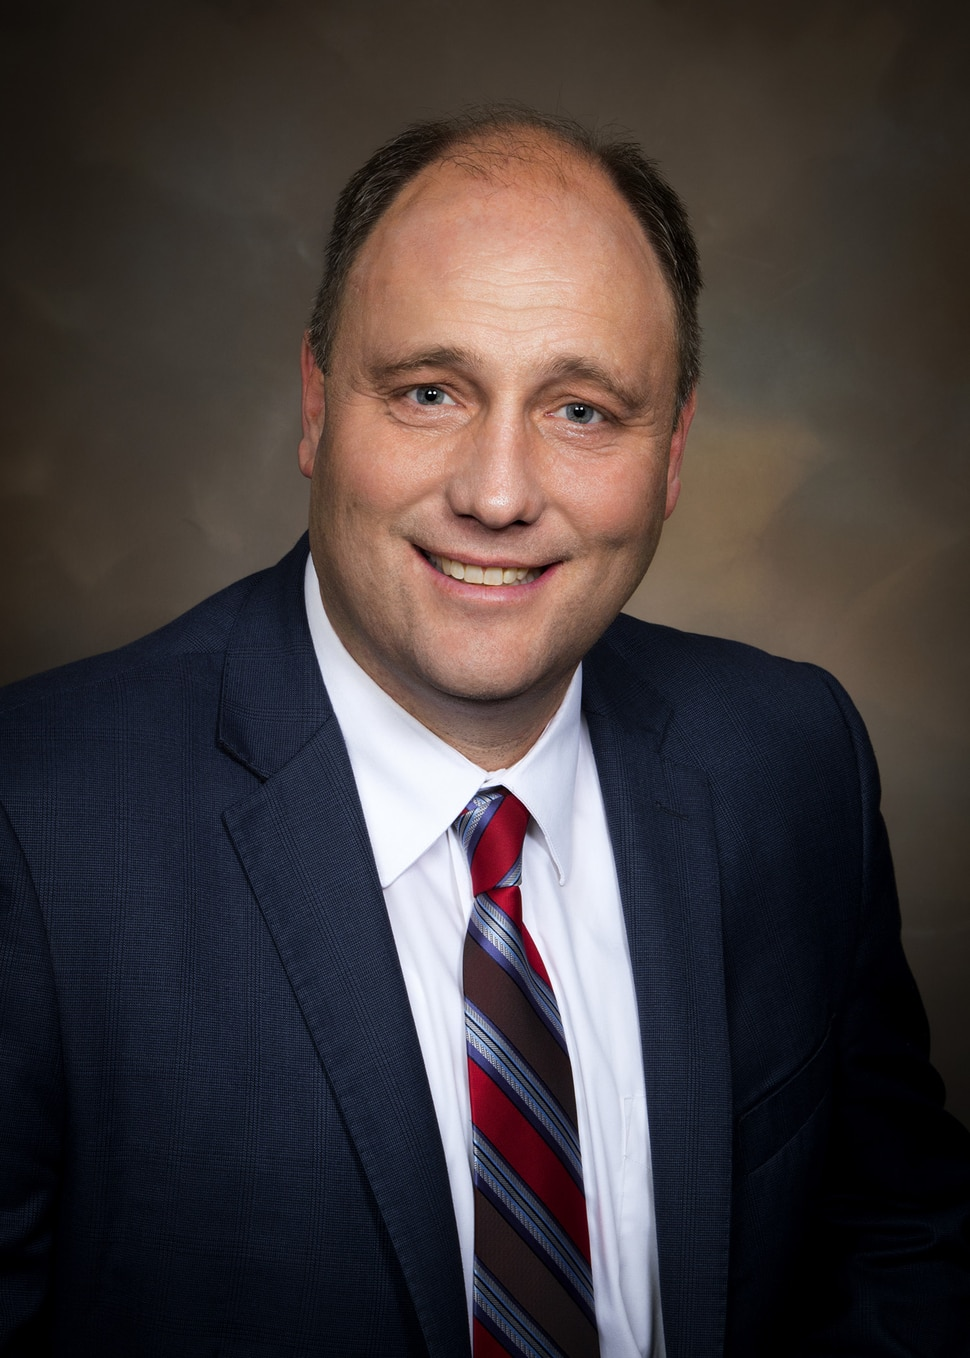 (Photo courtesy of the State of Utah) 1st Congressional District candidate Kerry Gibson, former Utah commissioner of agriculture and food, ex-Weber County commissioner and one-time state legislator.